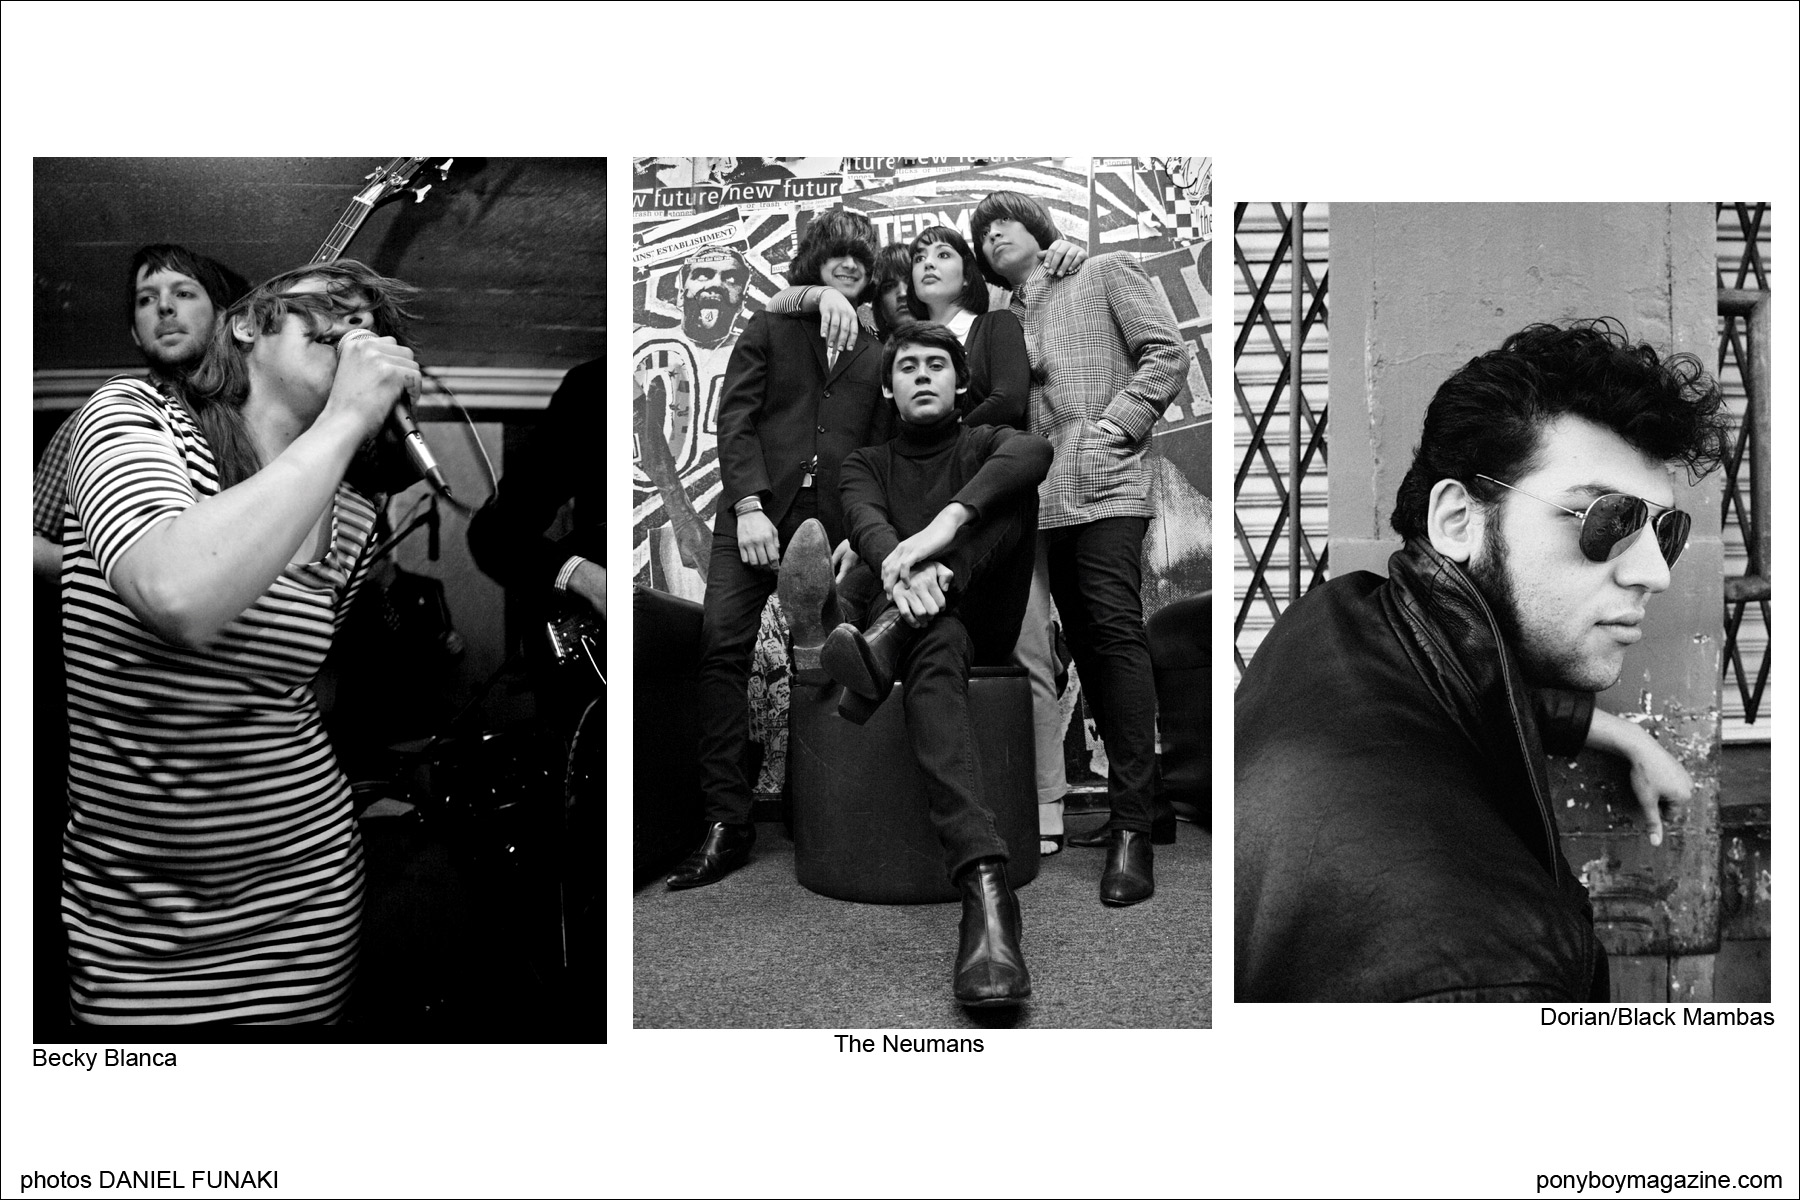 Photographs of Wild Records artist Becky Blanca, The Neumans and Dorian of Black Mambas by Daniel Funaki. Ponyboy Magazine.